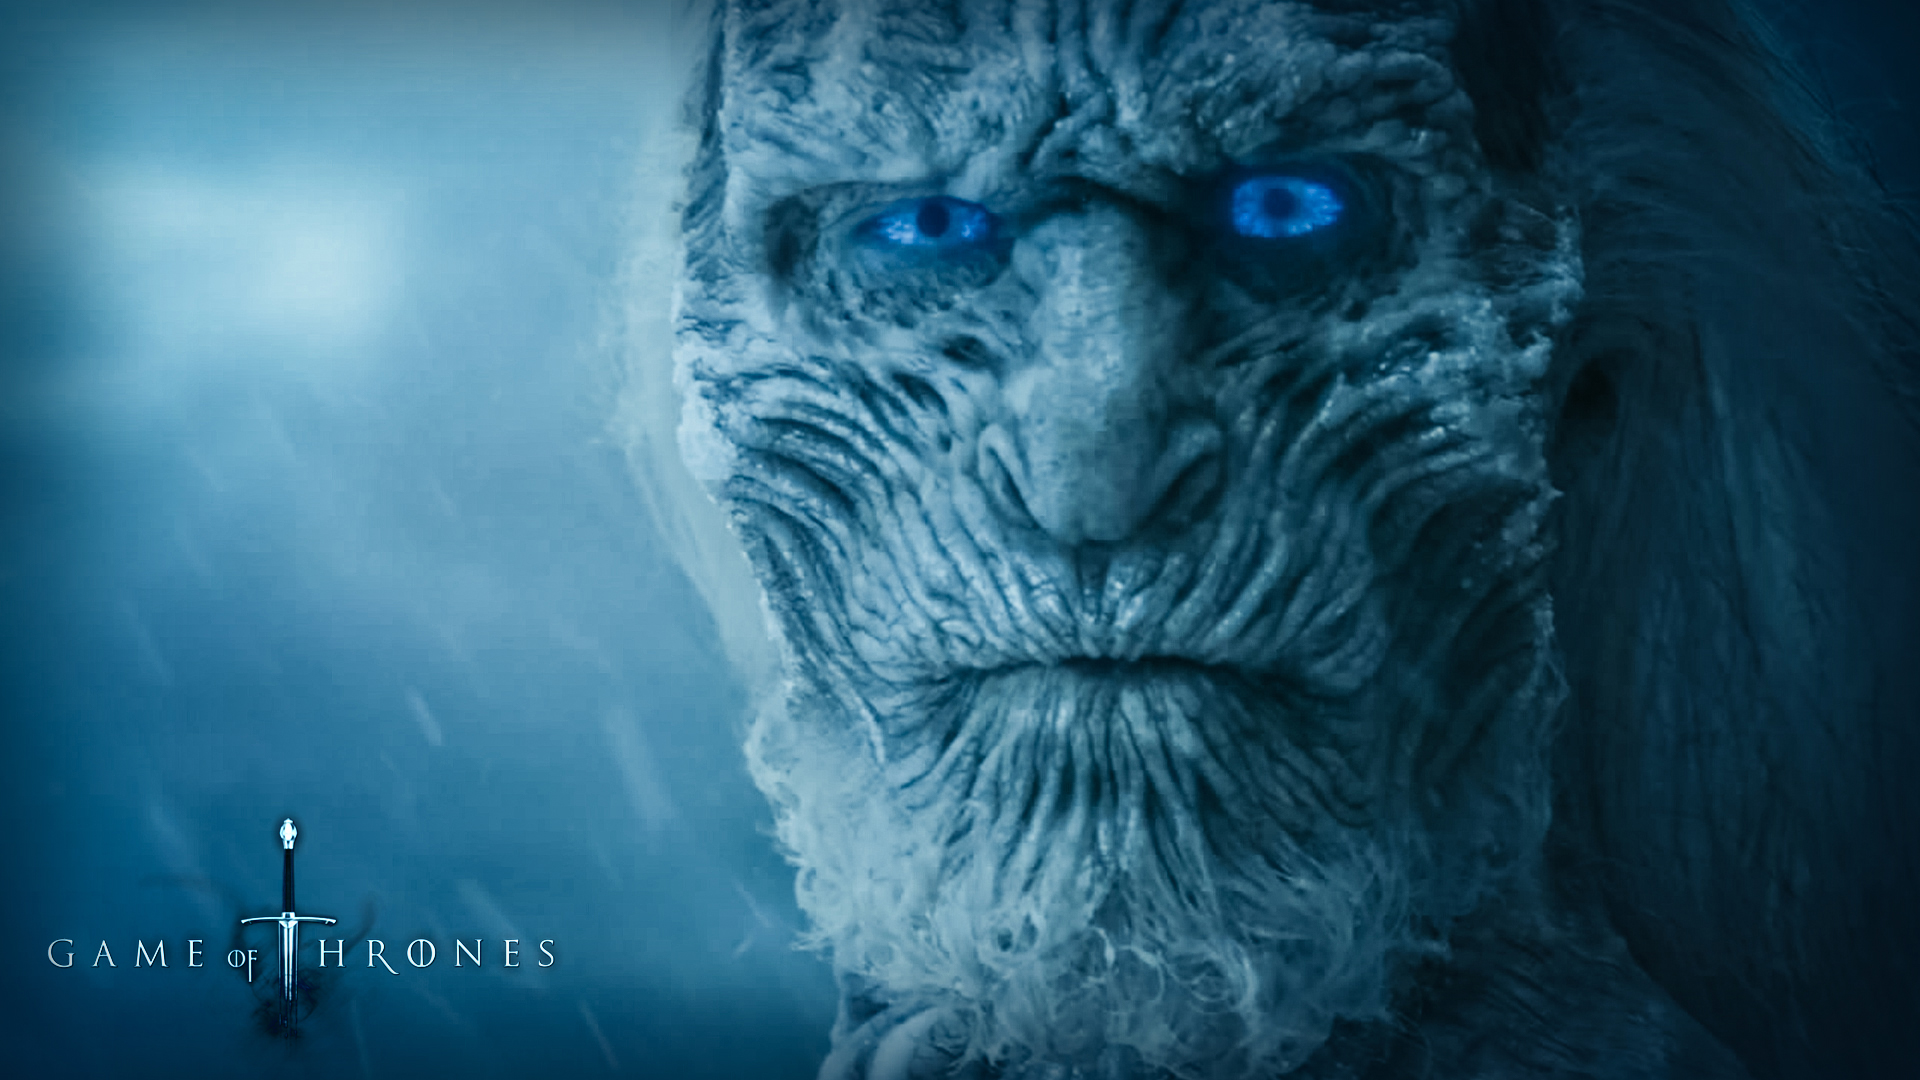 Game of Thrones White Walkers 1920x1080